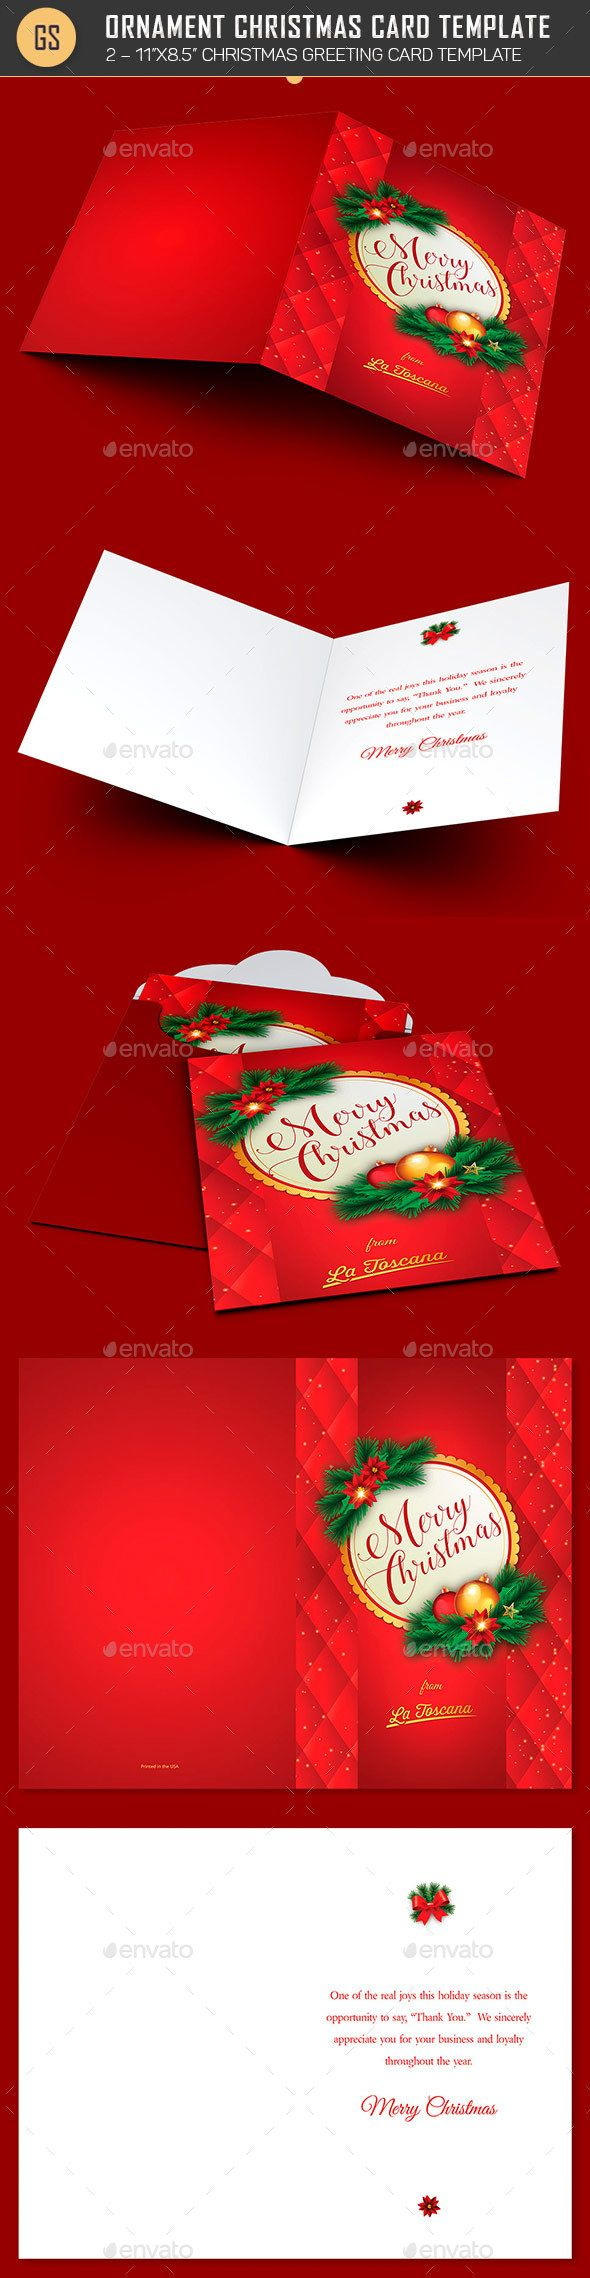 Red Ornament Christmas Card Template Christmas Card Templates